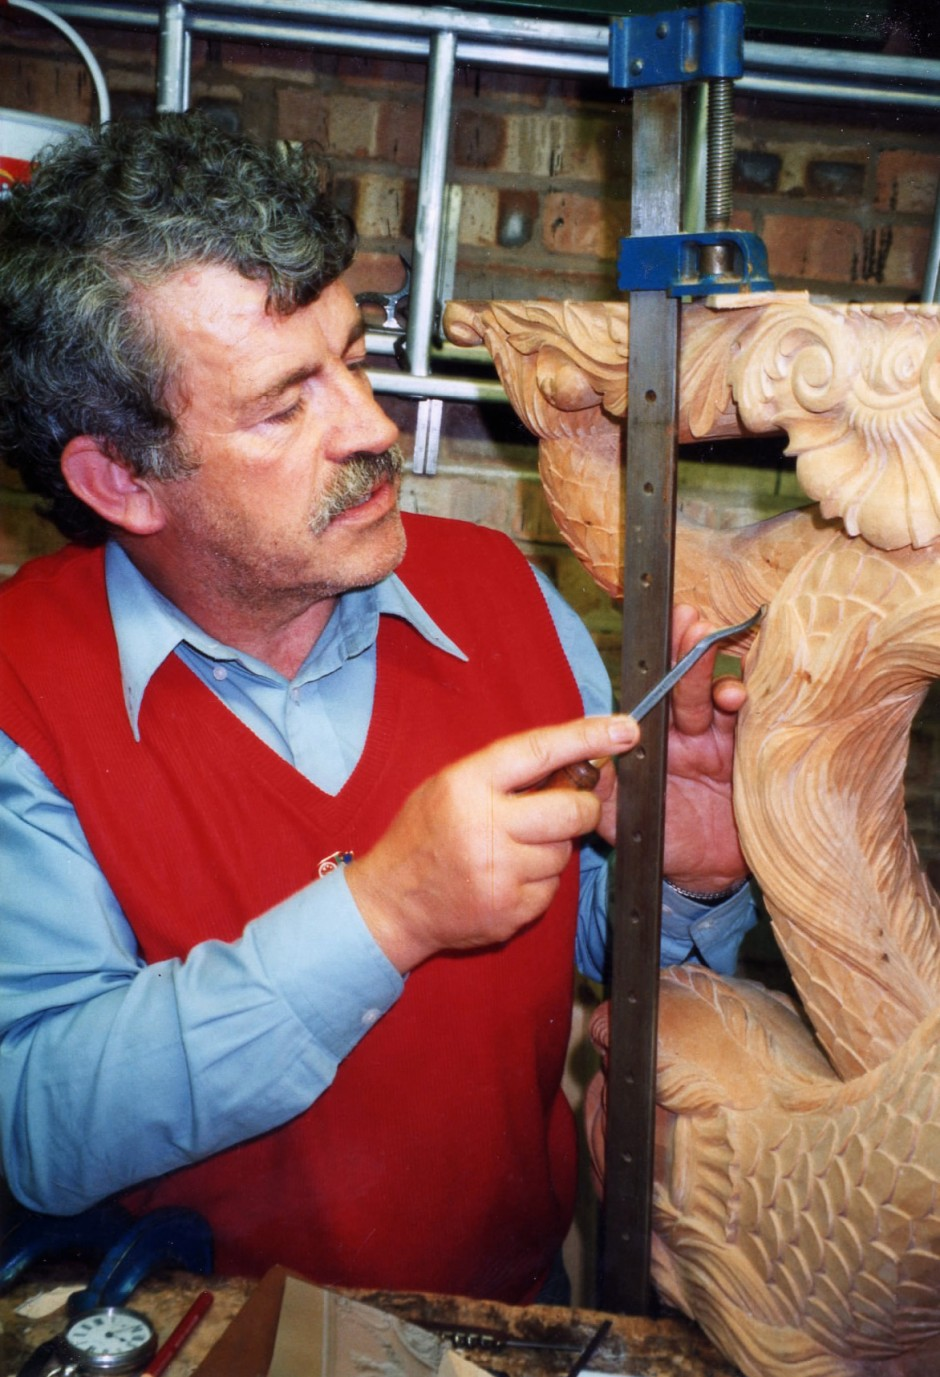 Jose adds final details to the carvings - final carving, light touches